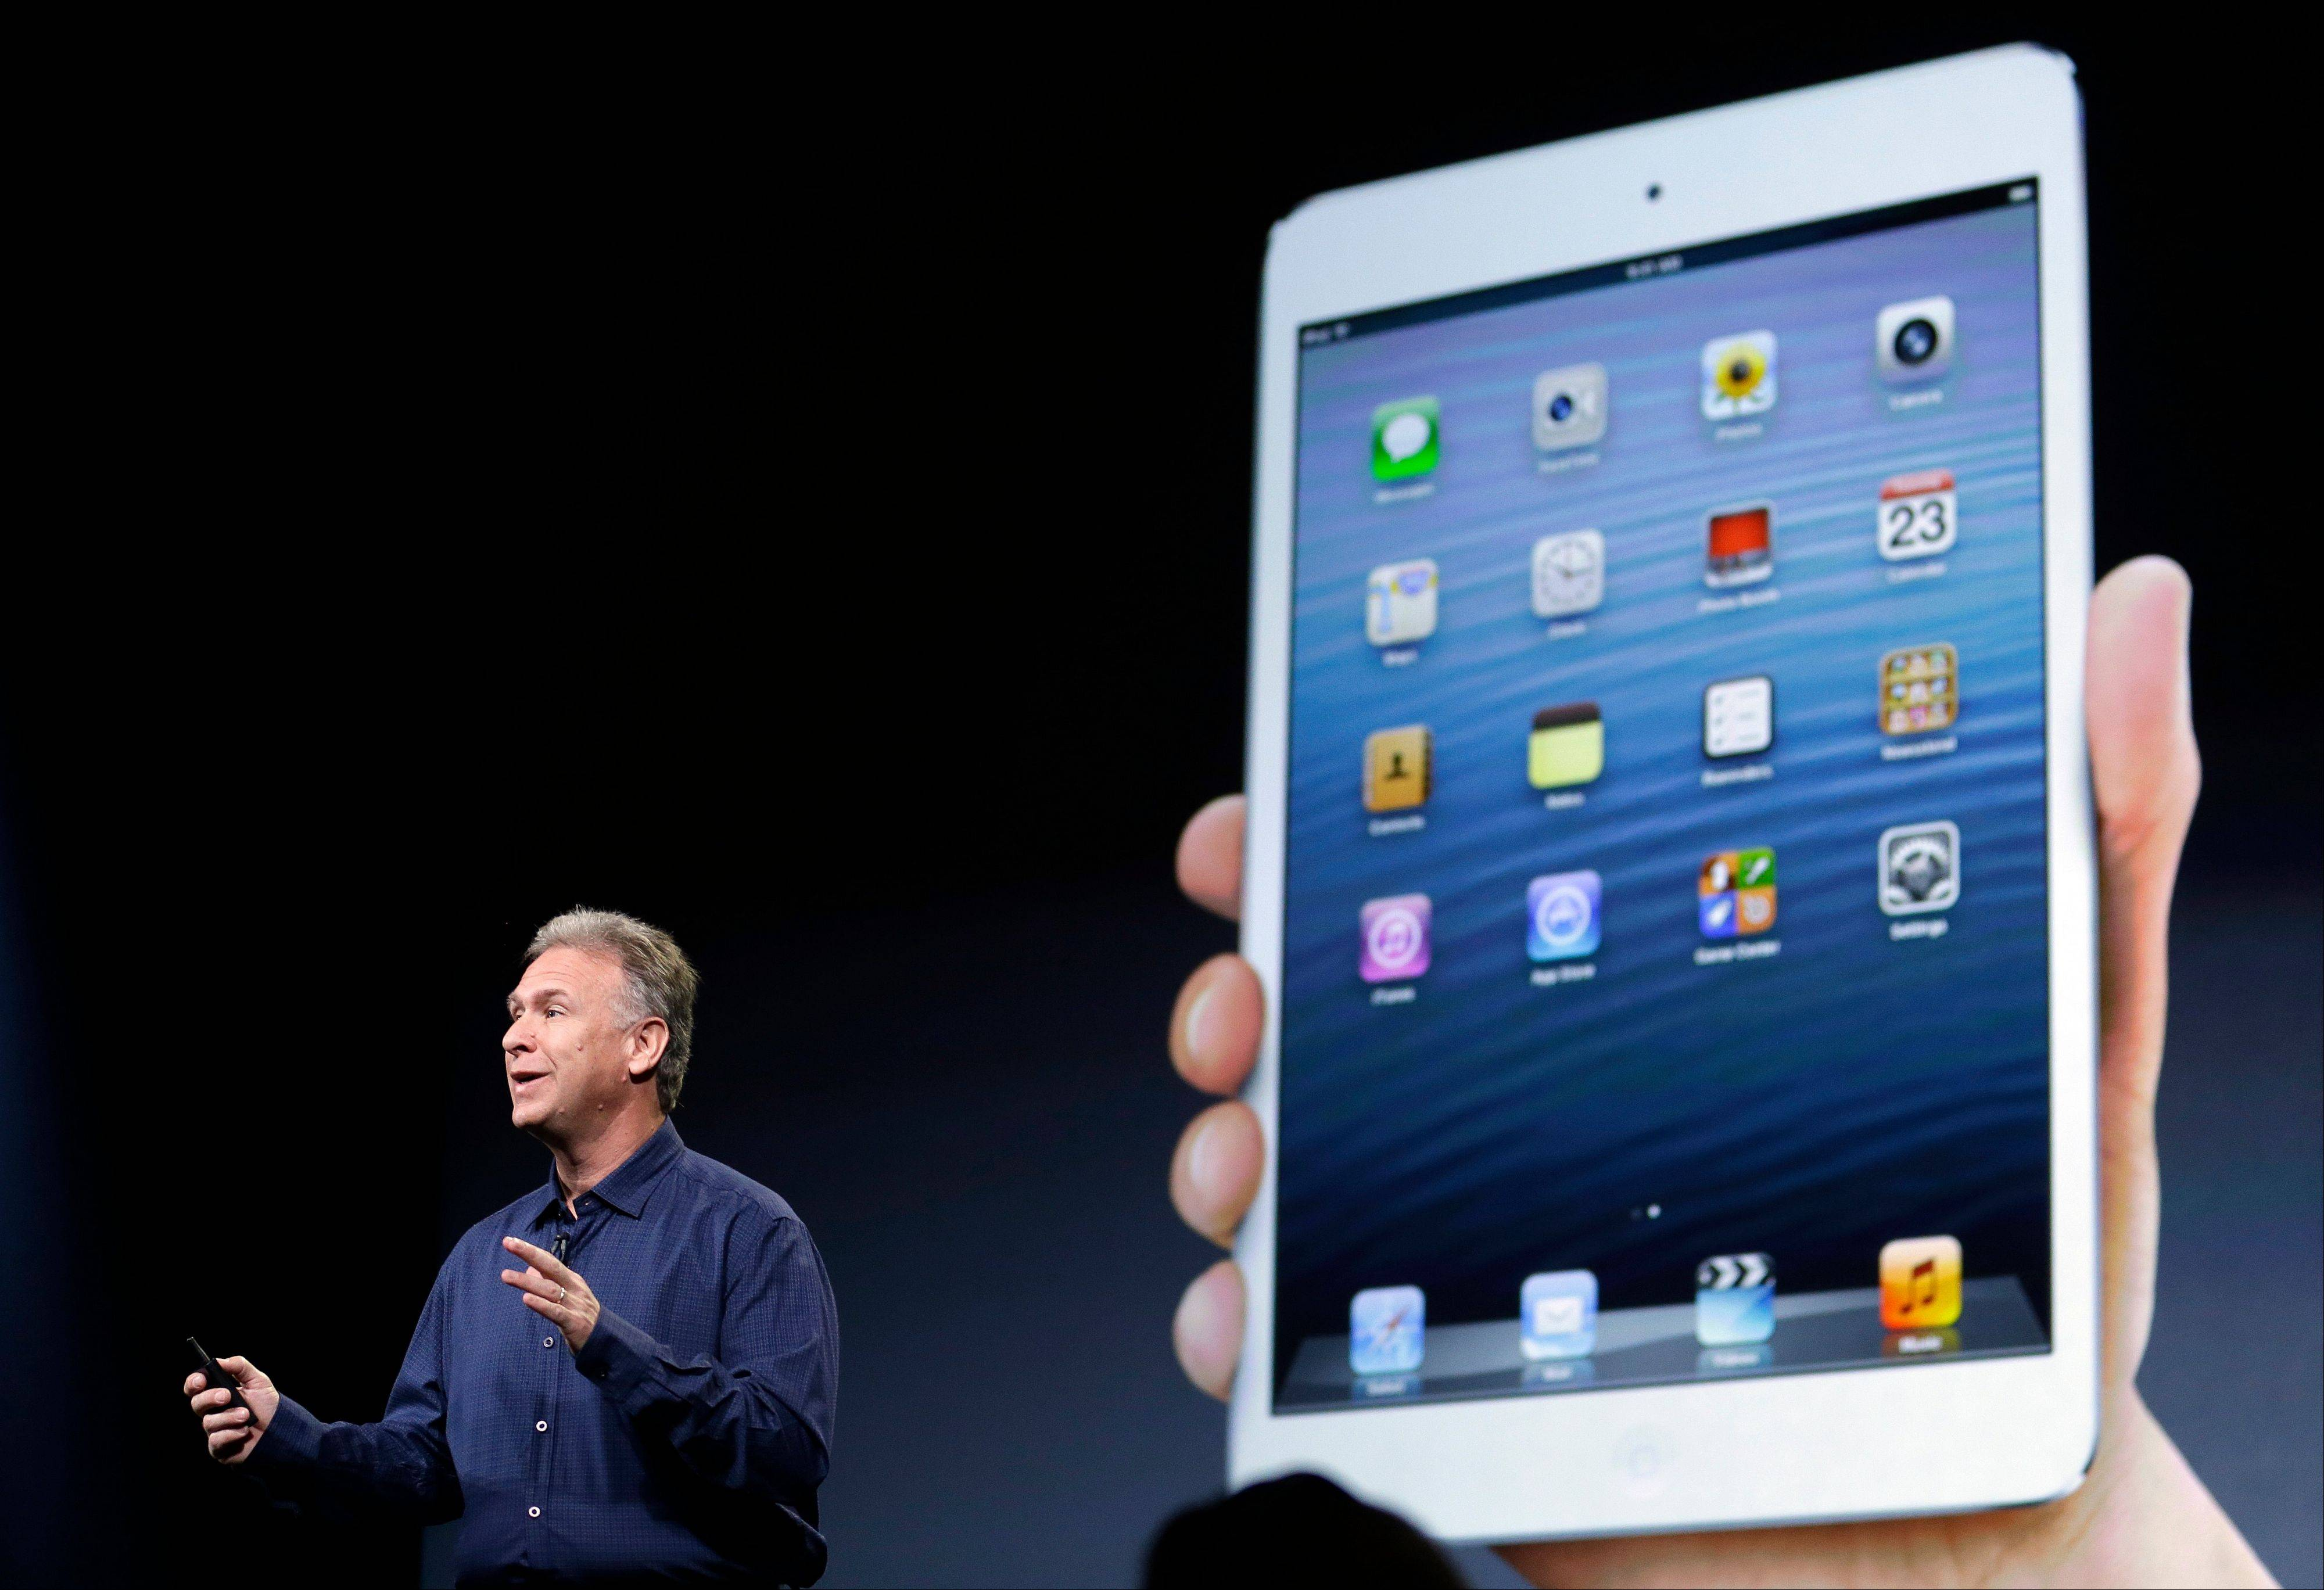 Phil Schiller, Apple�s senior vice president of worldwide product marketing, introduces the iPad mini in San Jose, Calif., Tuesday. Apple Inc. is refusing to compete on price with its rivals in the tablet market. It�s pricing its new, smaller iPad well above the competition.